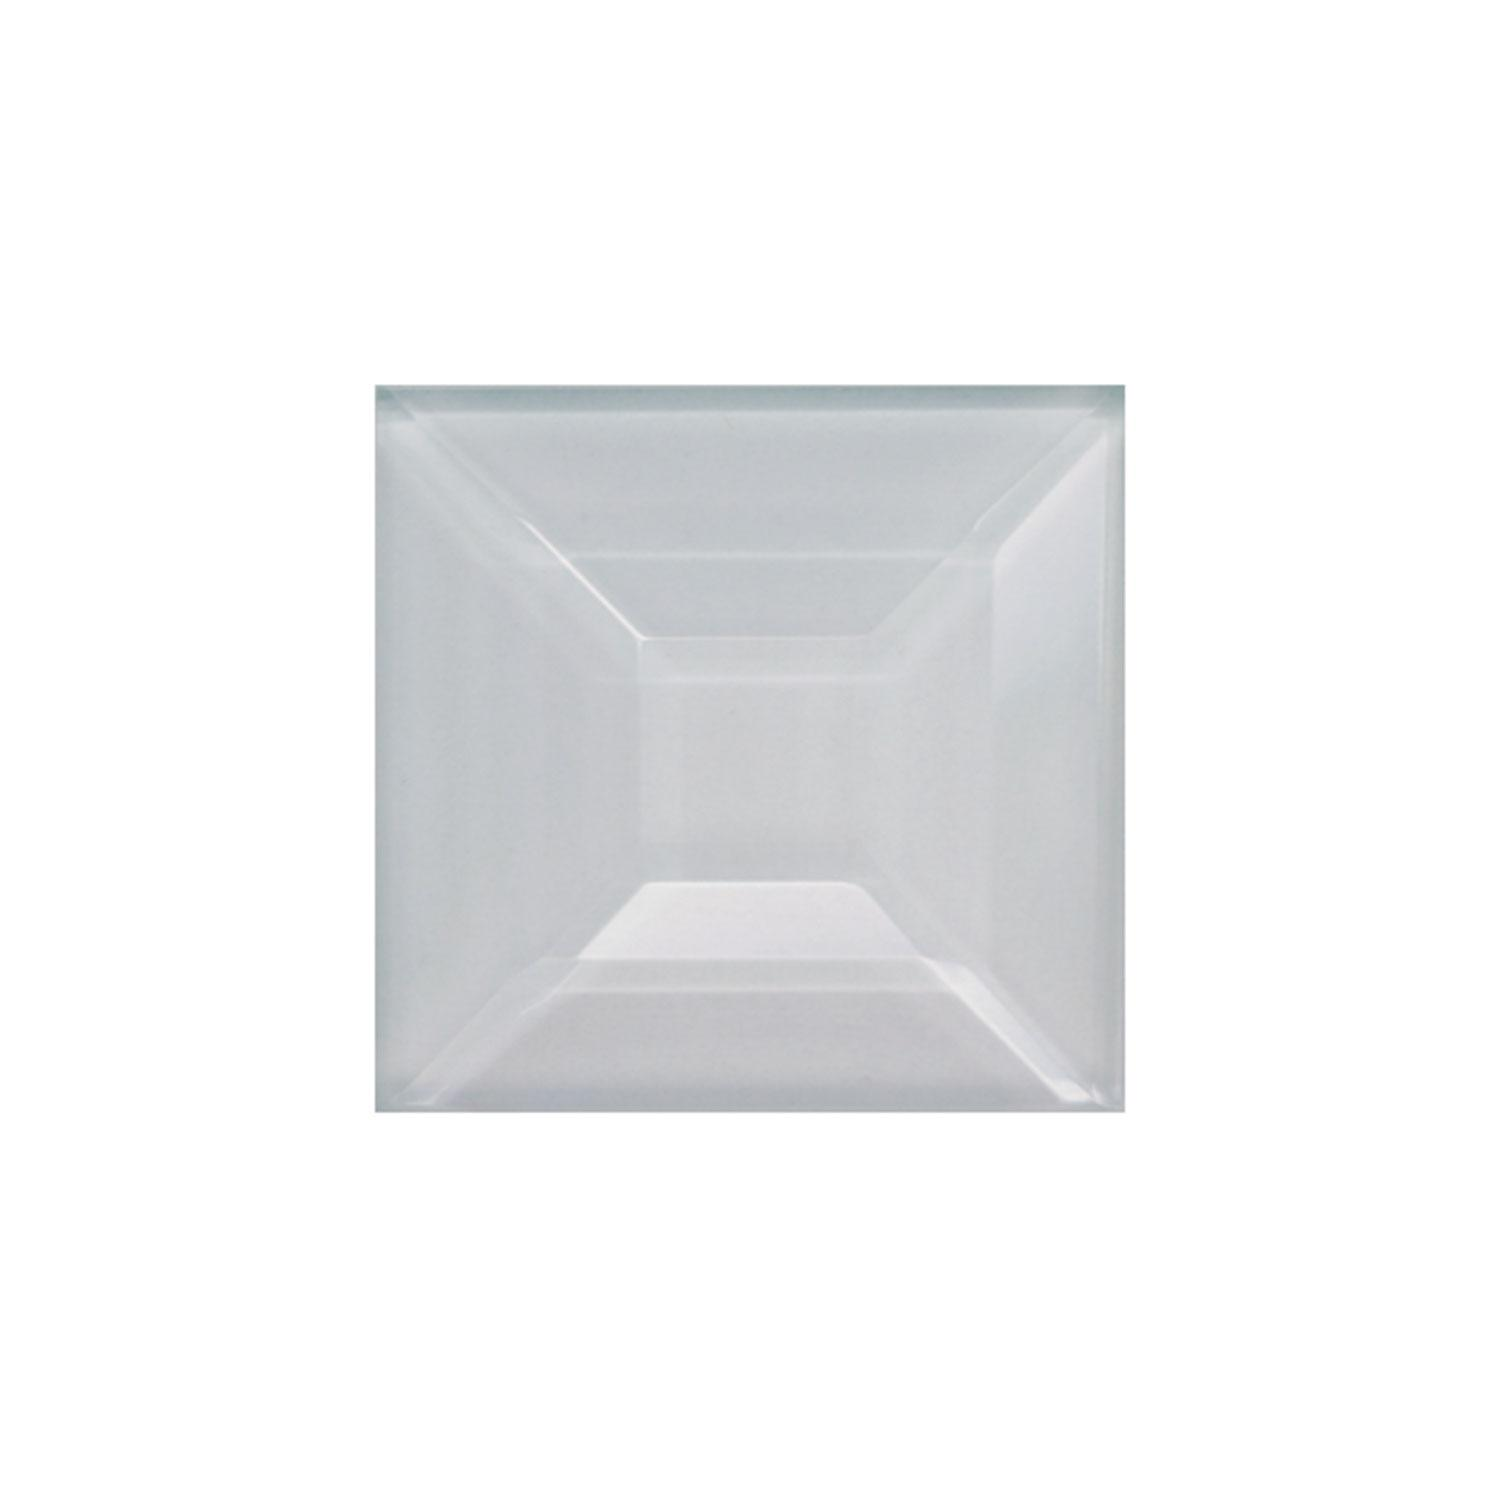 1 Square Double Bevel - Box of 90